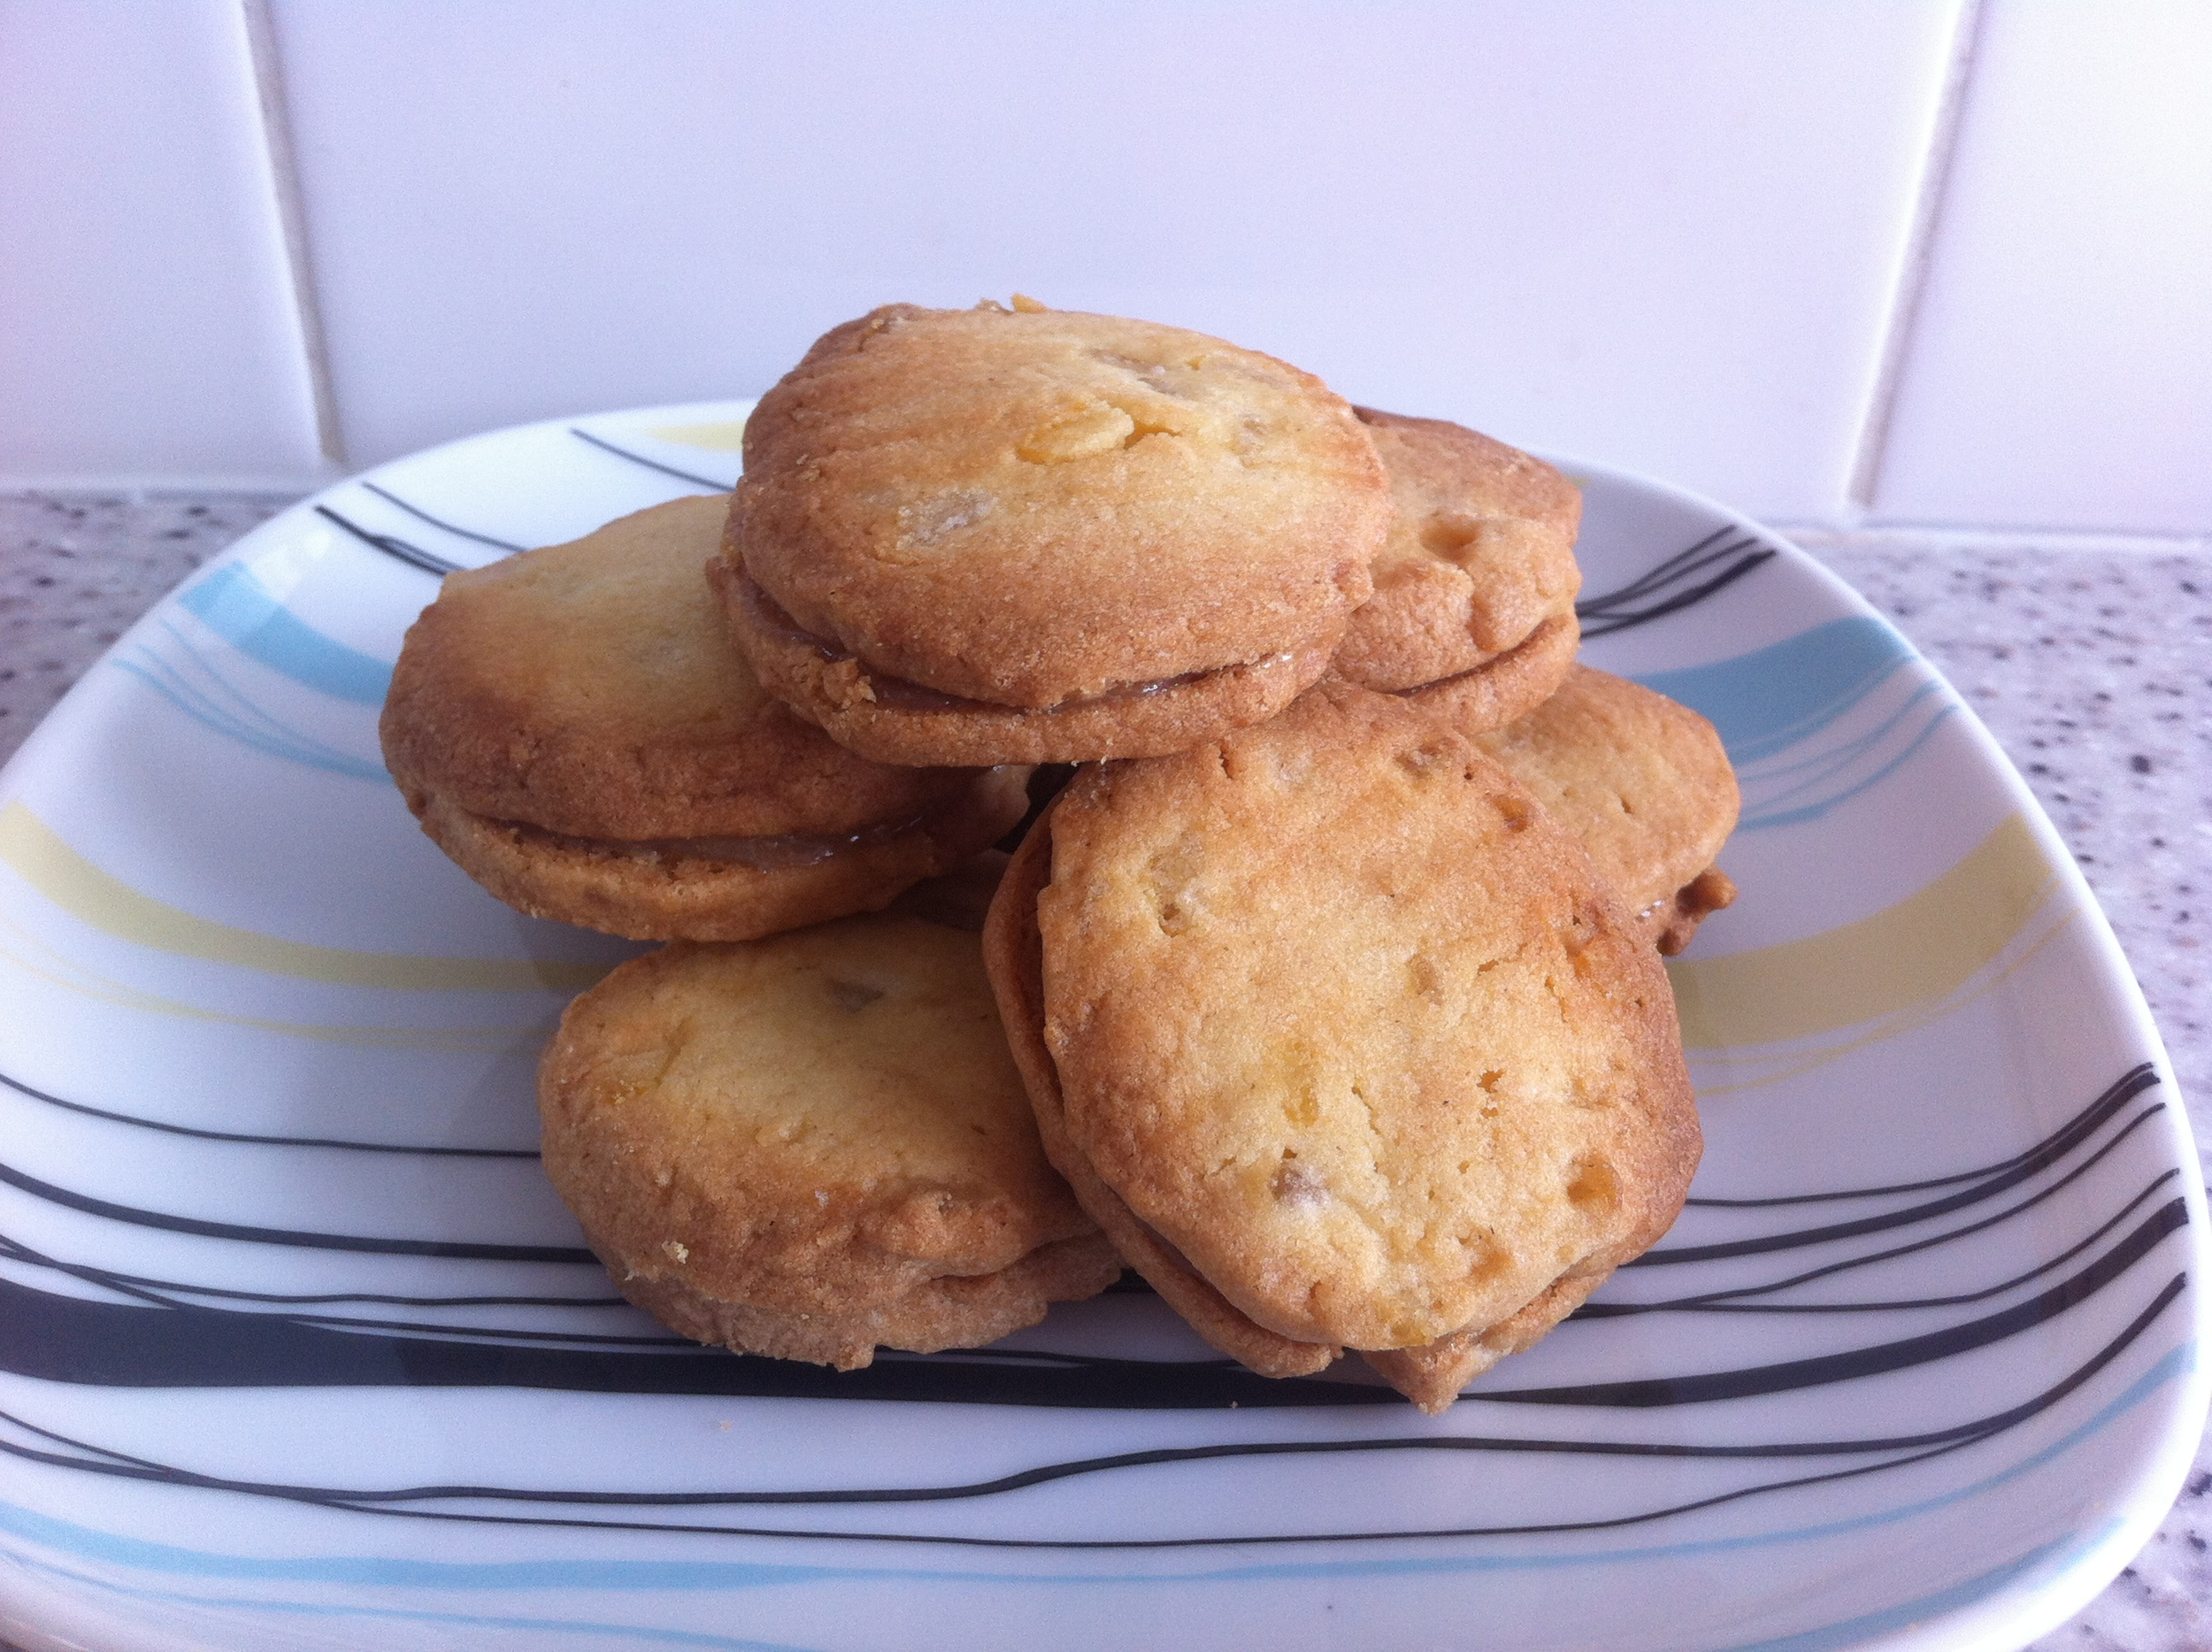 Biscuits with candied peel, sandwiched with lemon curd